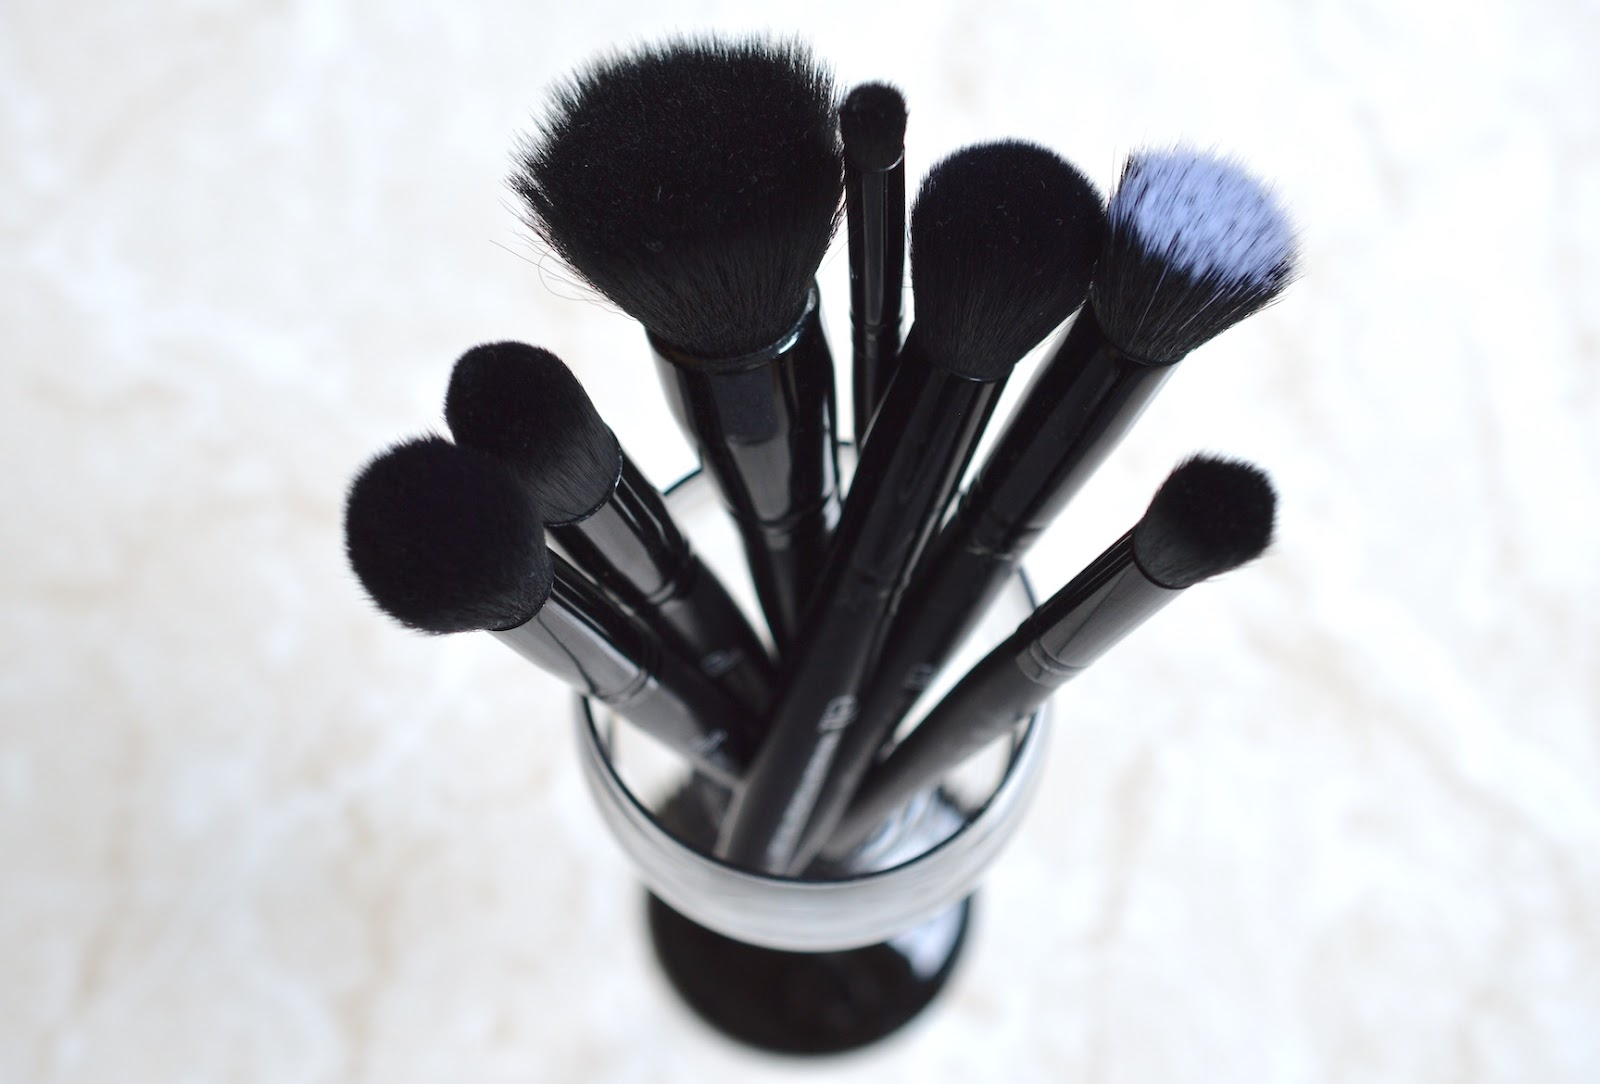 e.l.f. studio makeup brushes